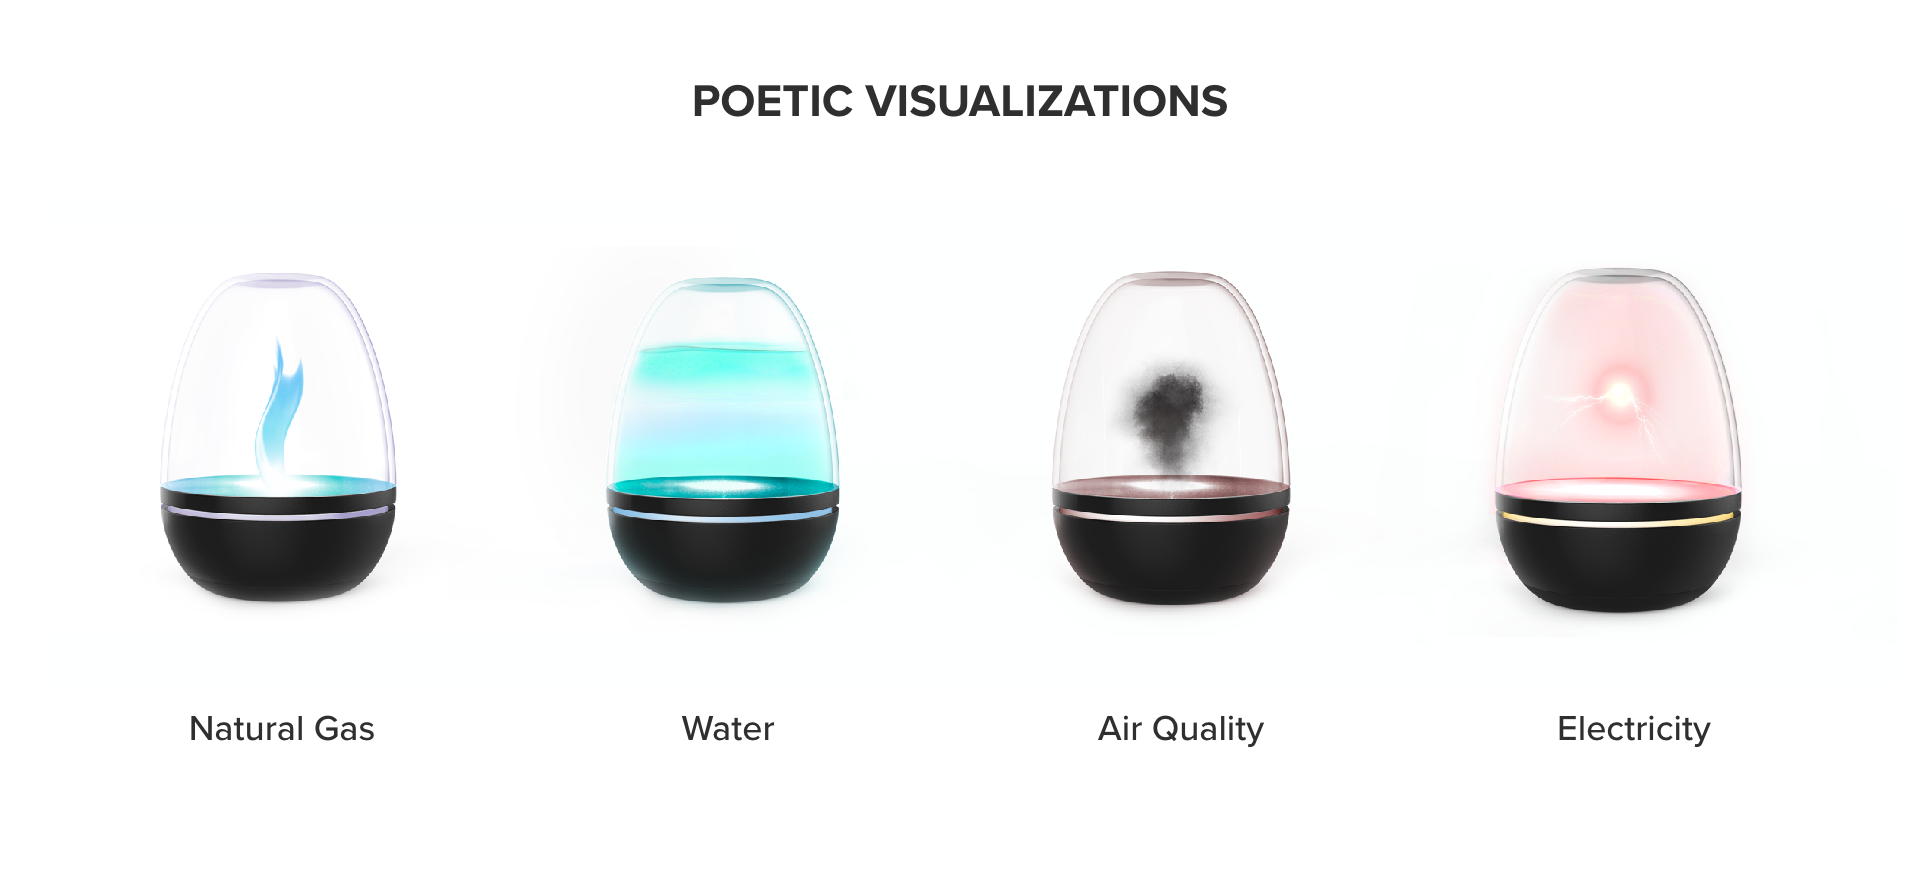 poetic visualizations